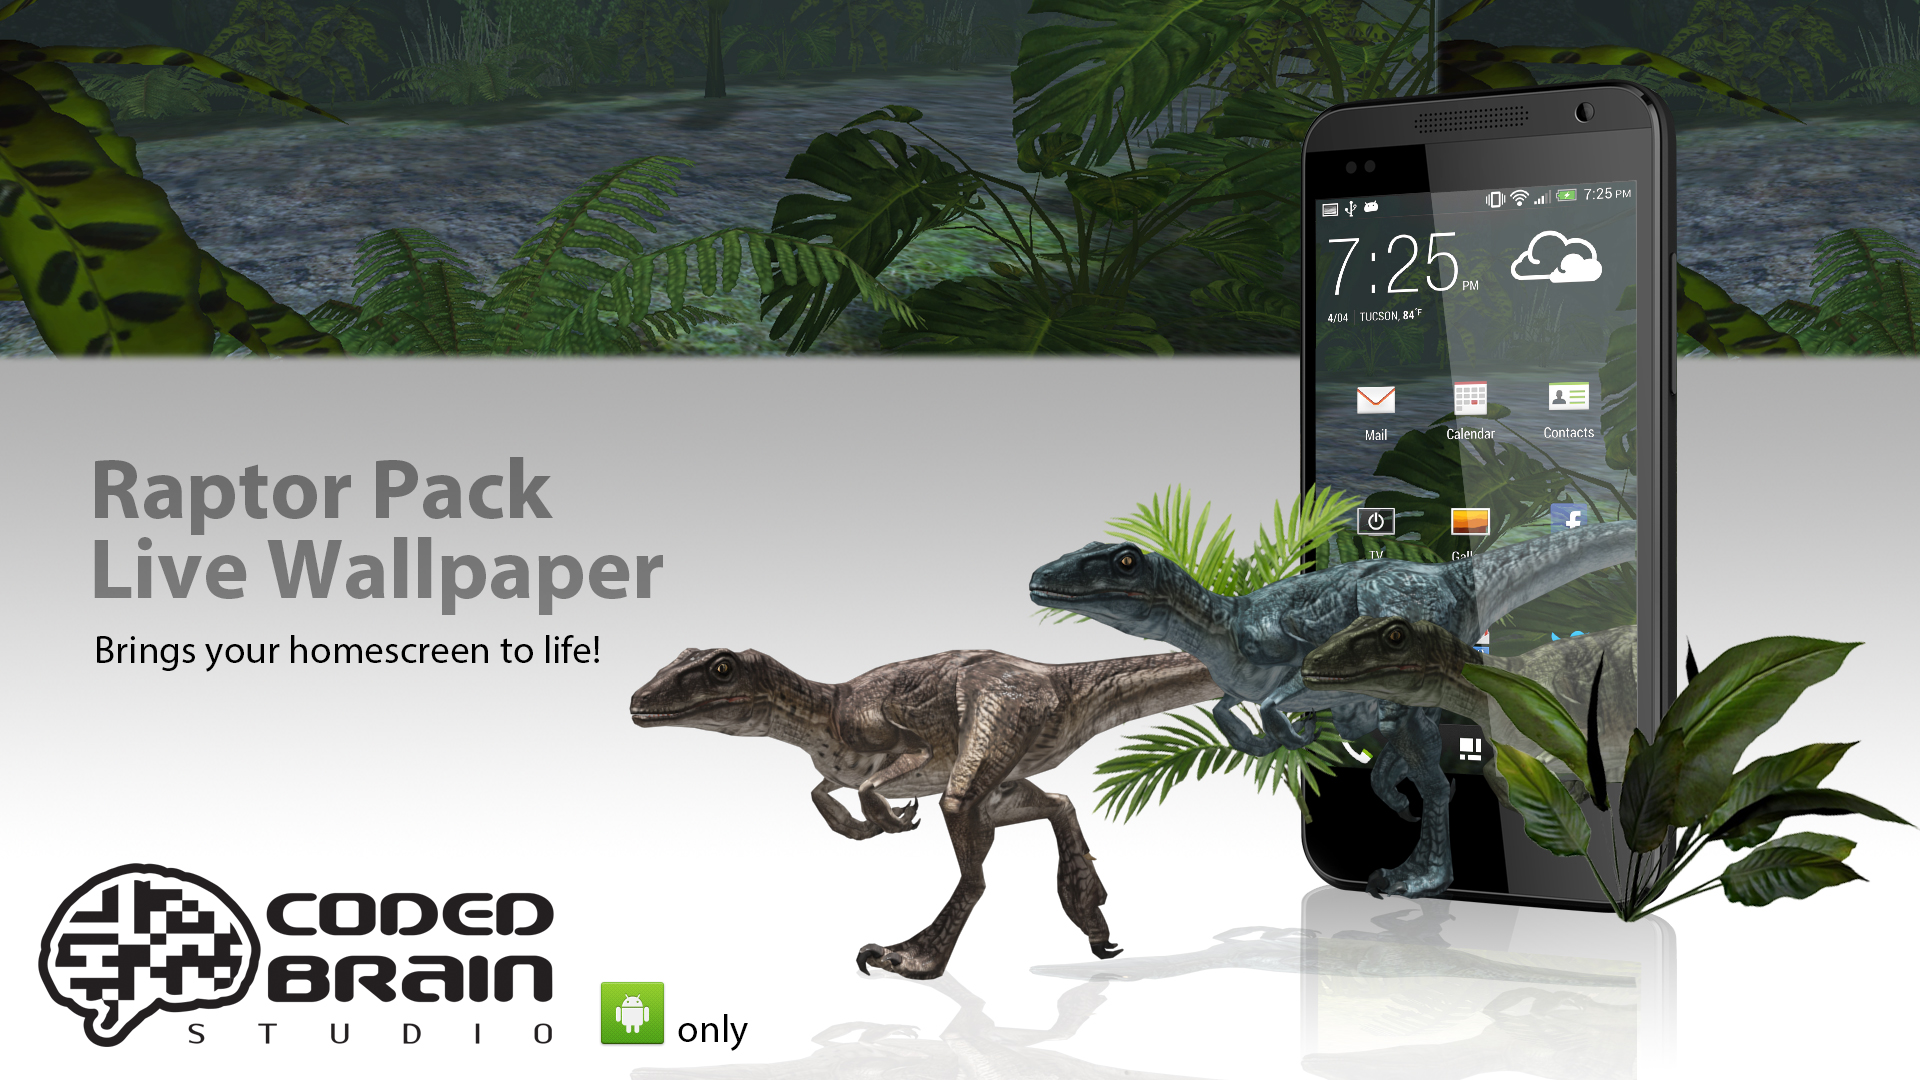 Raptor Pack Live Wallpaper